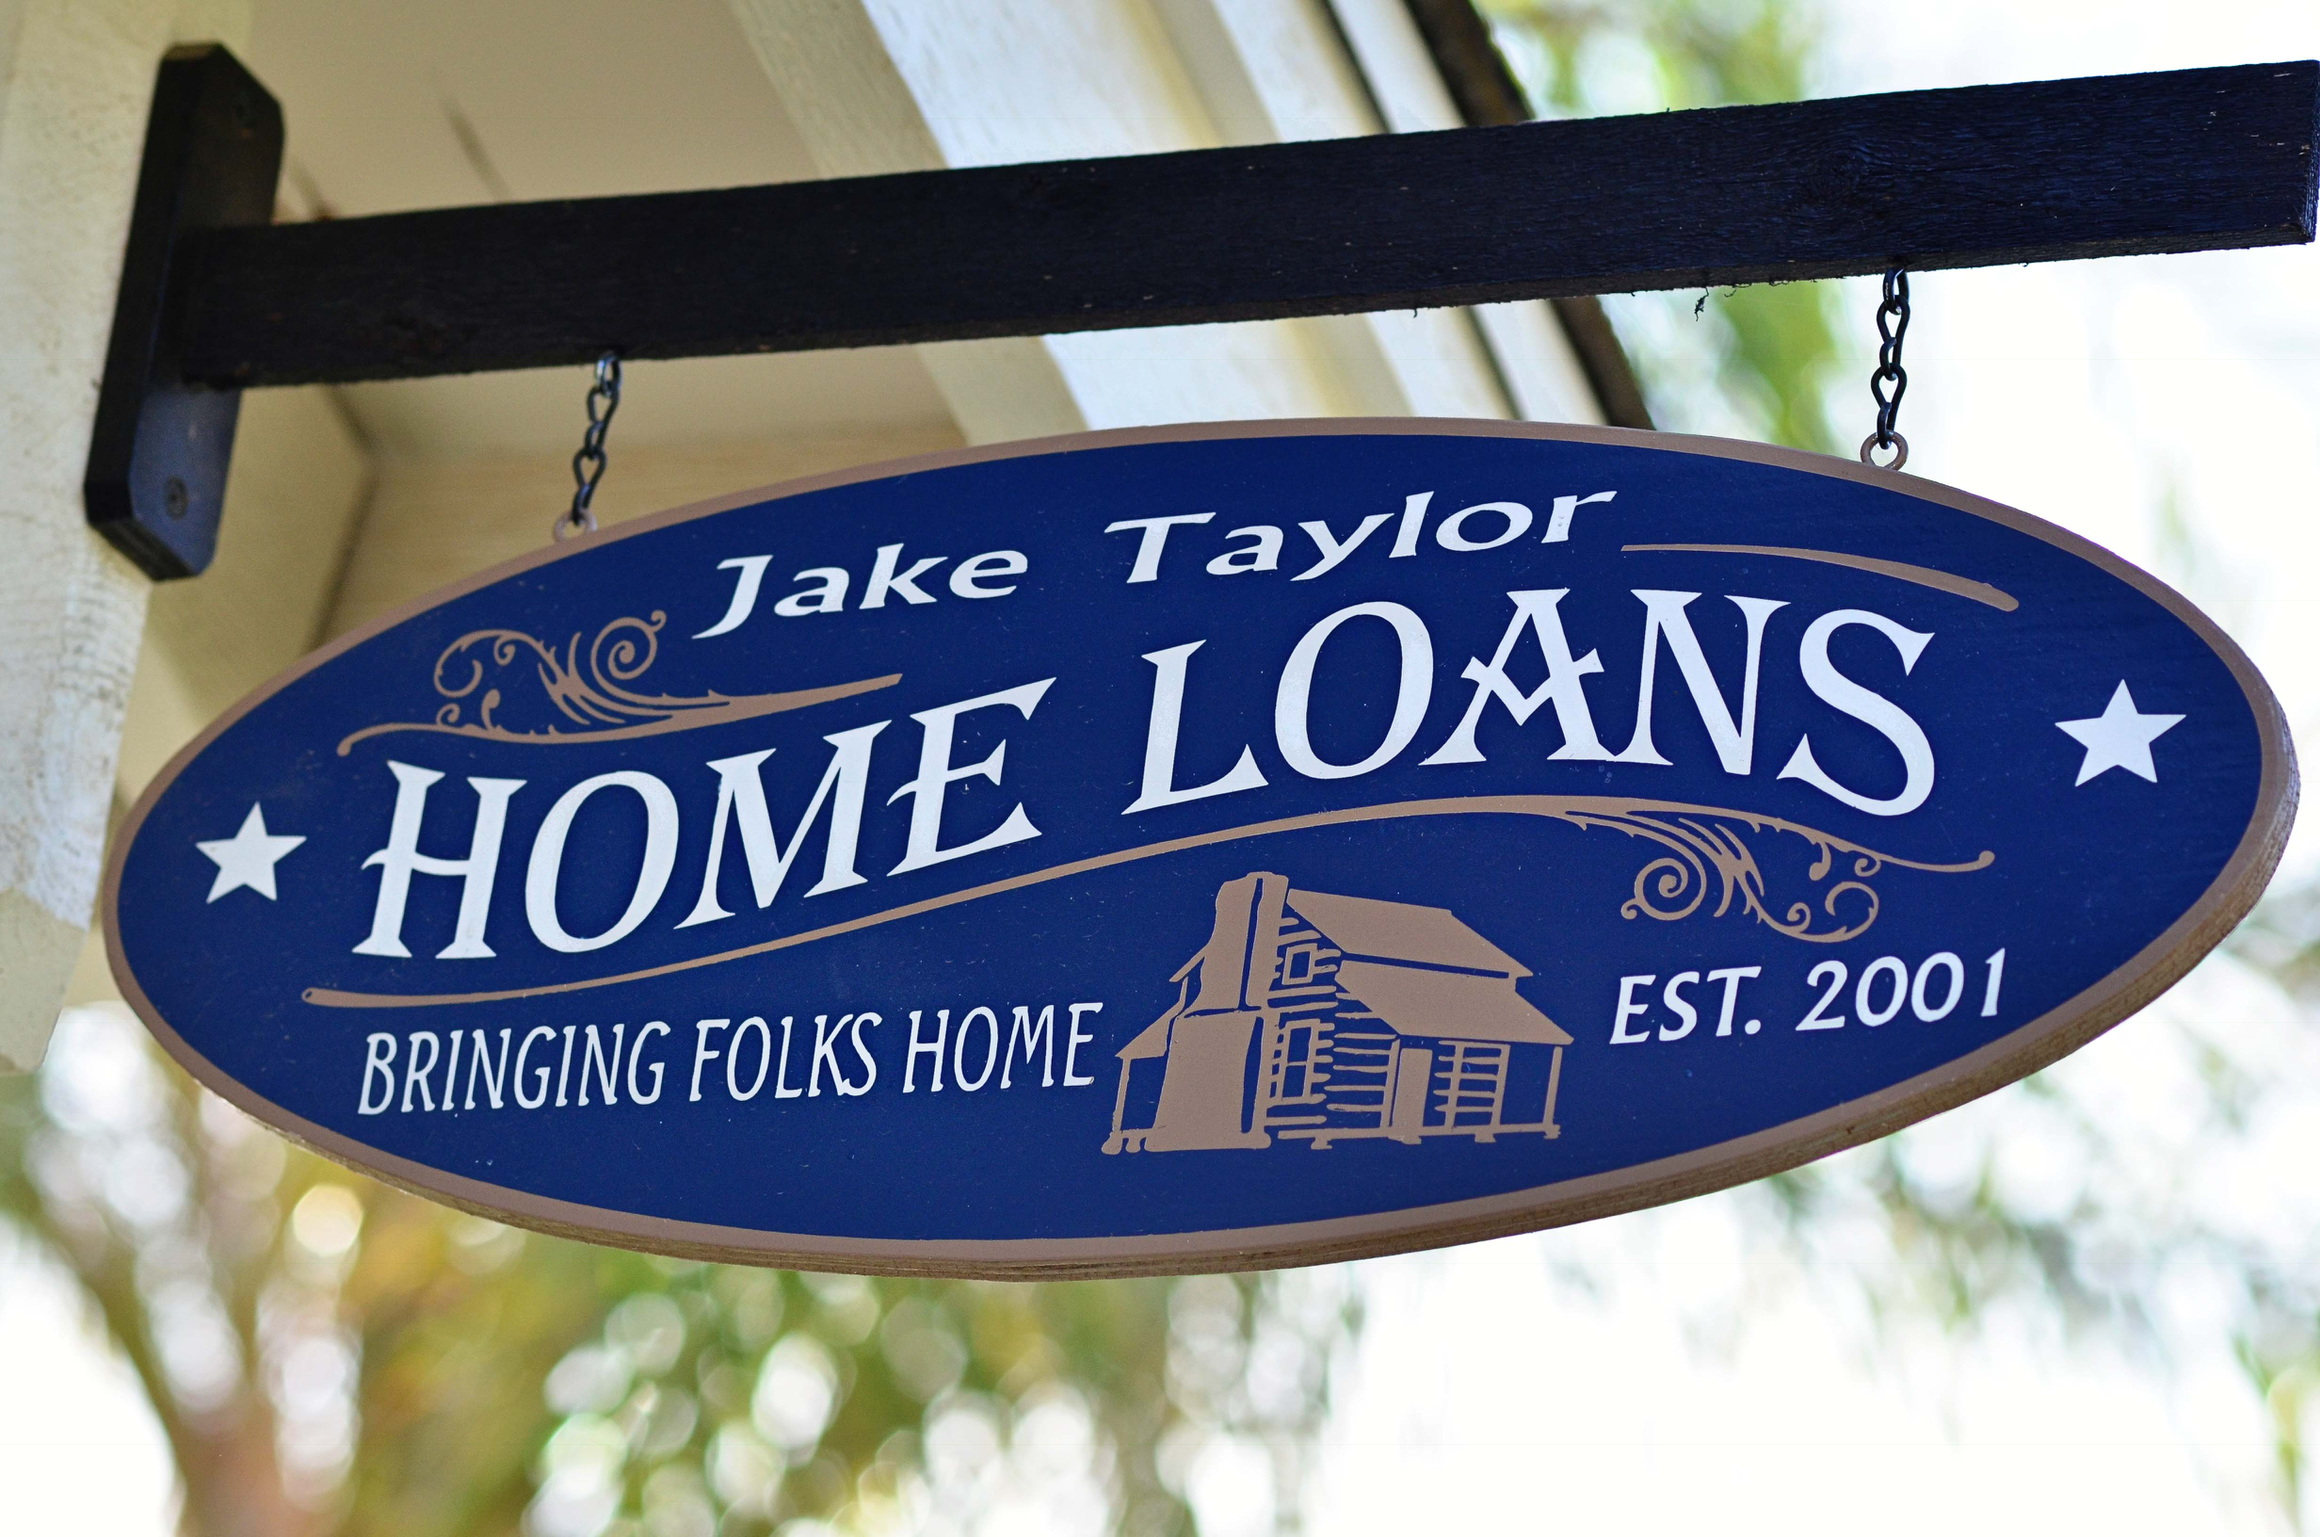 Independent Mortgage Expert Jake Taylor Offers VA Construction Loans in Arizona